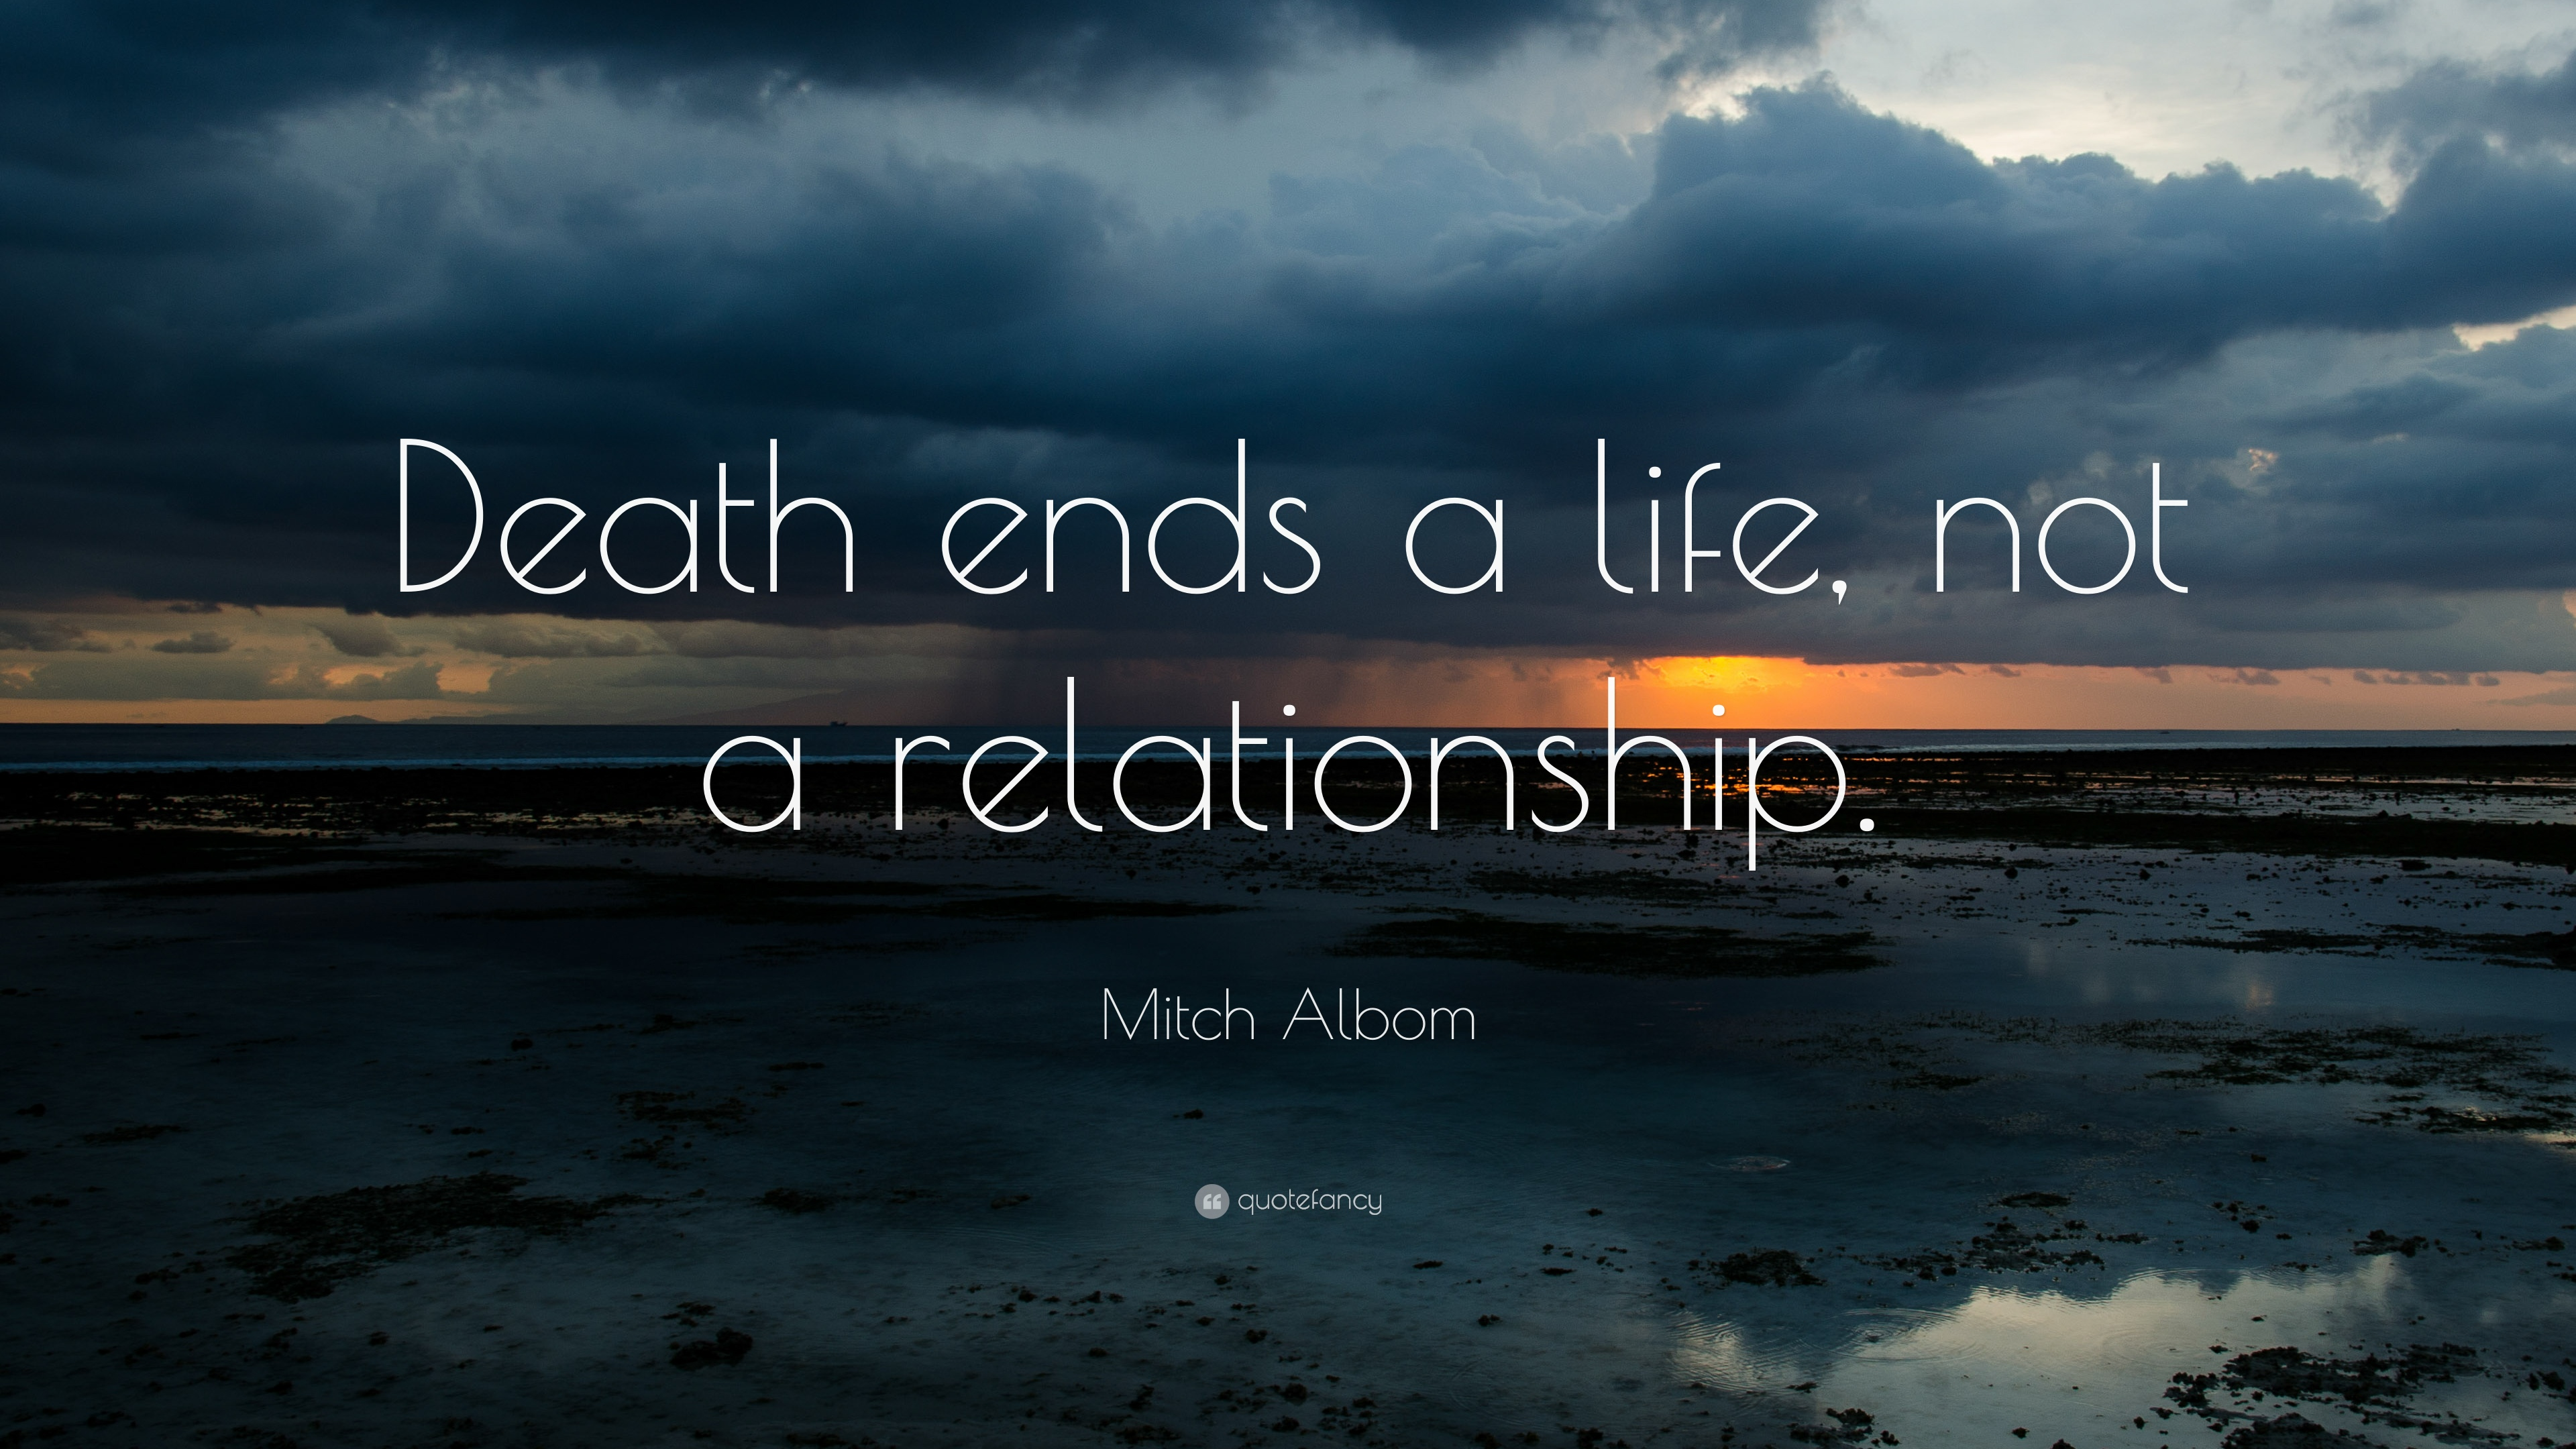 Relationship Quotes: U201cDeath Ends A Life, Not A Relationship.u201d U2014 Mitch